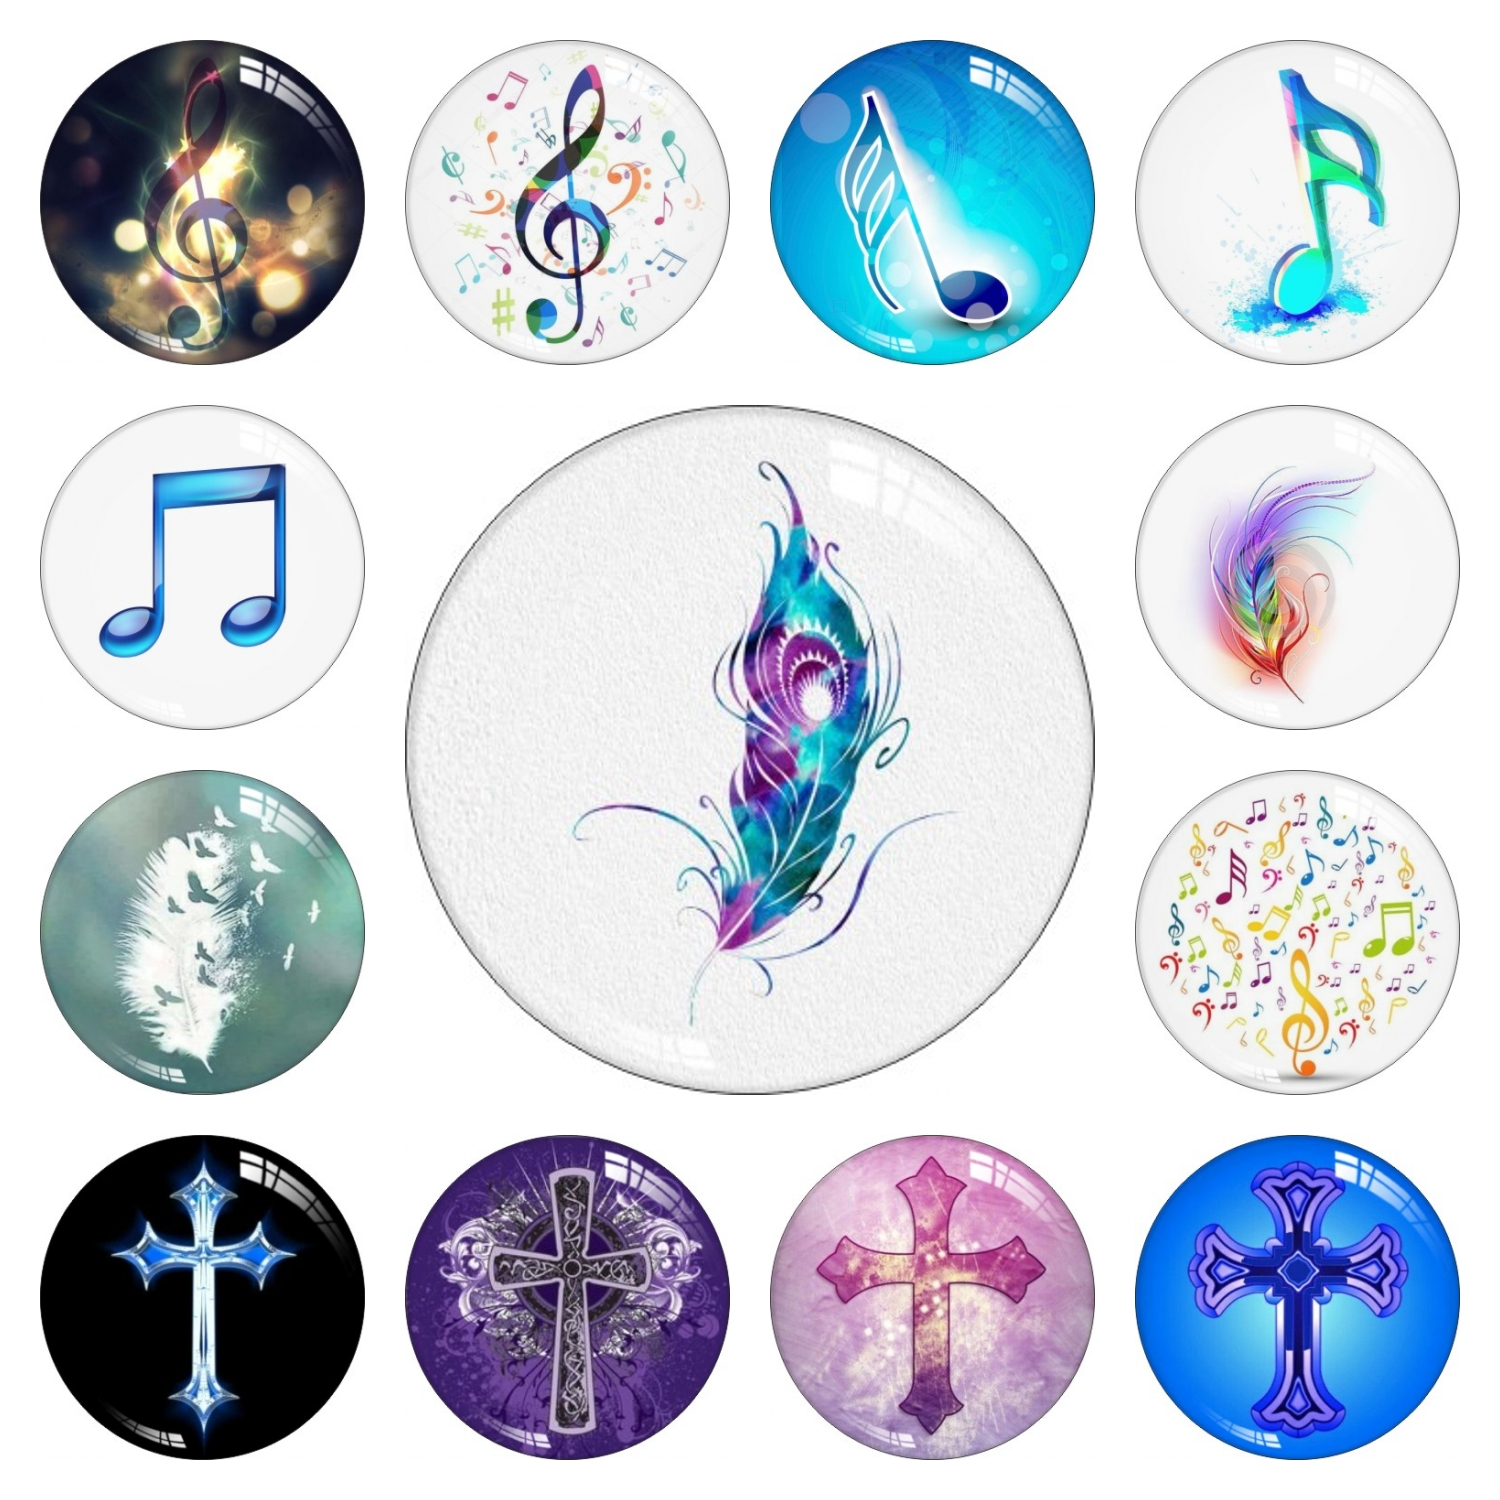 Cross Fashion Music Symbol Round Photo Glass Cabochon 12mm 14mm 16mm 18m 20mm 25mm 30mm Snap Button Jewelry DIY Making Earring image